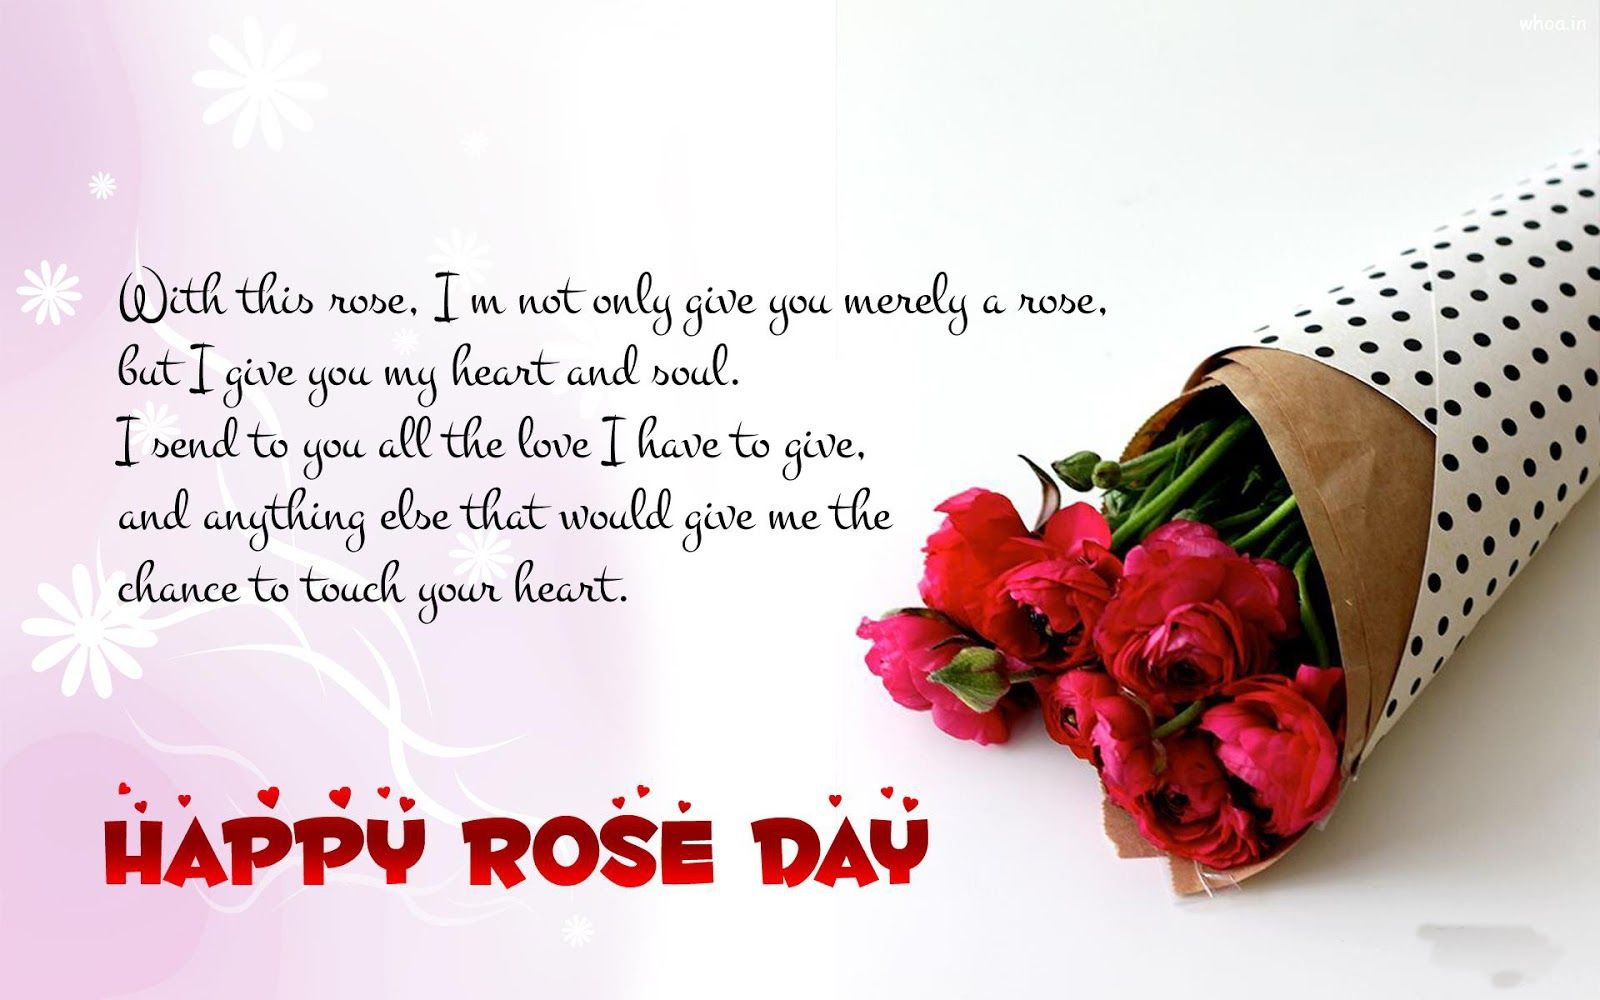 Rose Day Wishes 2018 Happy Rose Day Wallpaper Rose Day Wallpaper Love Quotes With Images